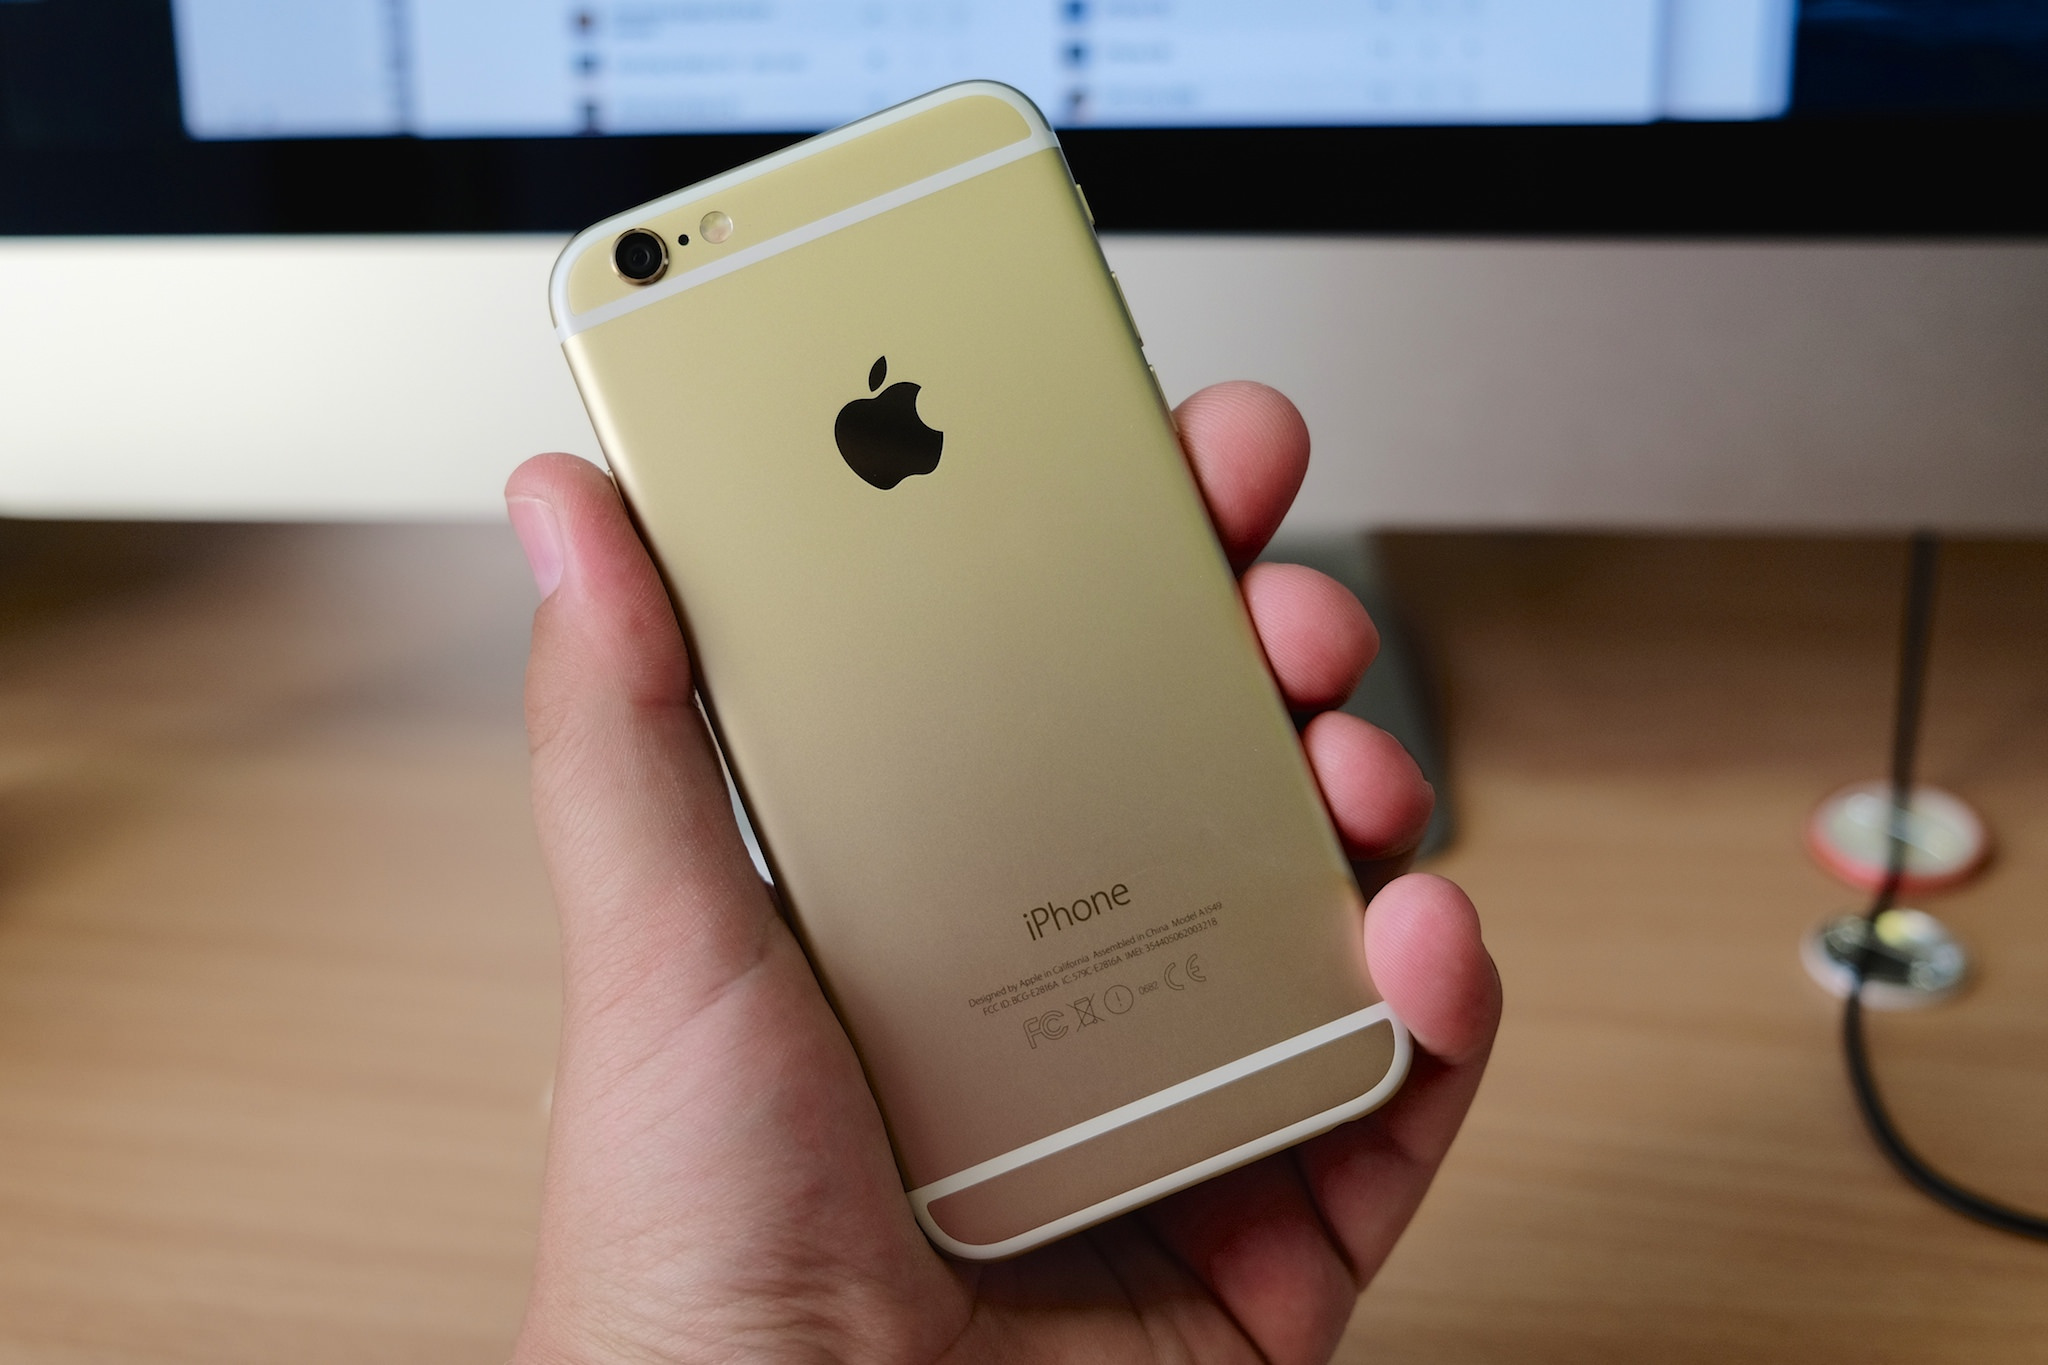 iPhone replacement batteries will be available for SGD38 in Singapore.